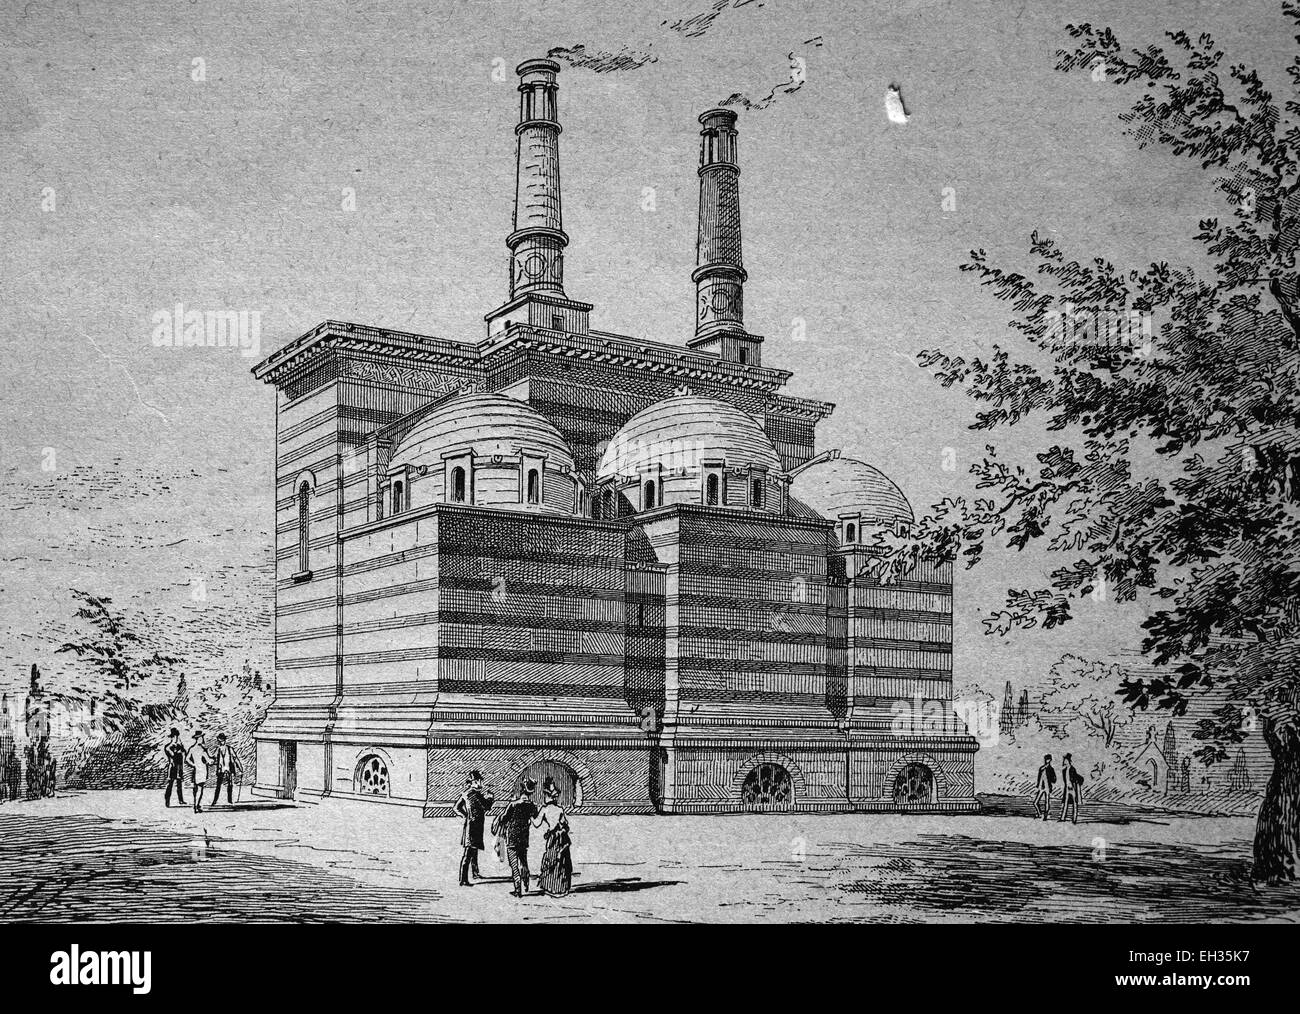 Cremation apparatus on the Pere-Lachaise cemetery, Paris, France, woodcut, historical engraving, 1880, Europe - Stock Image